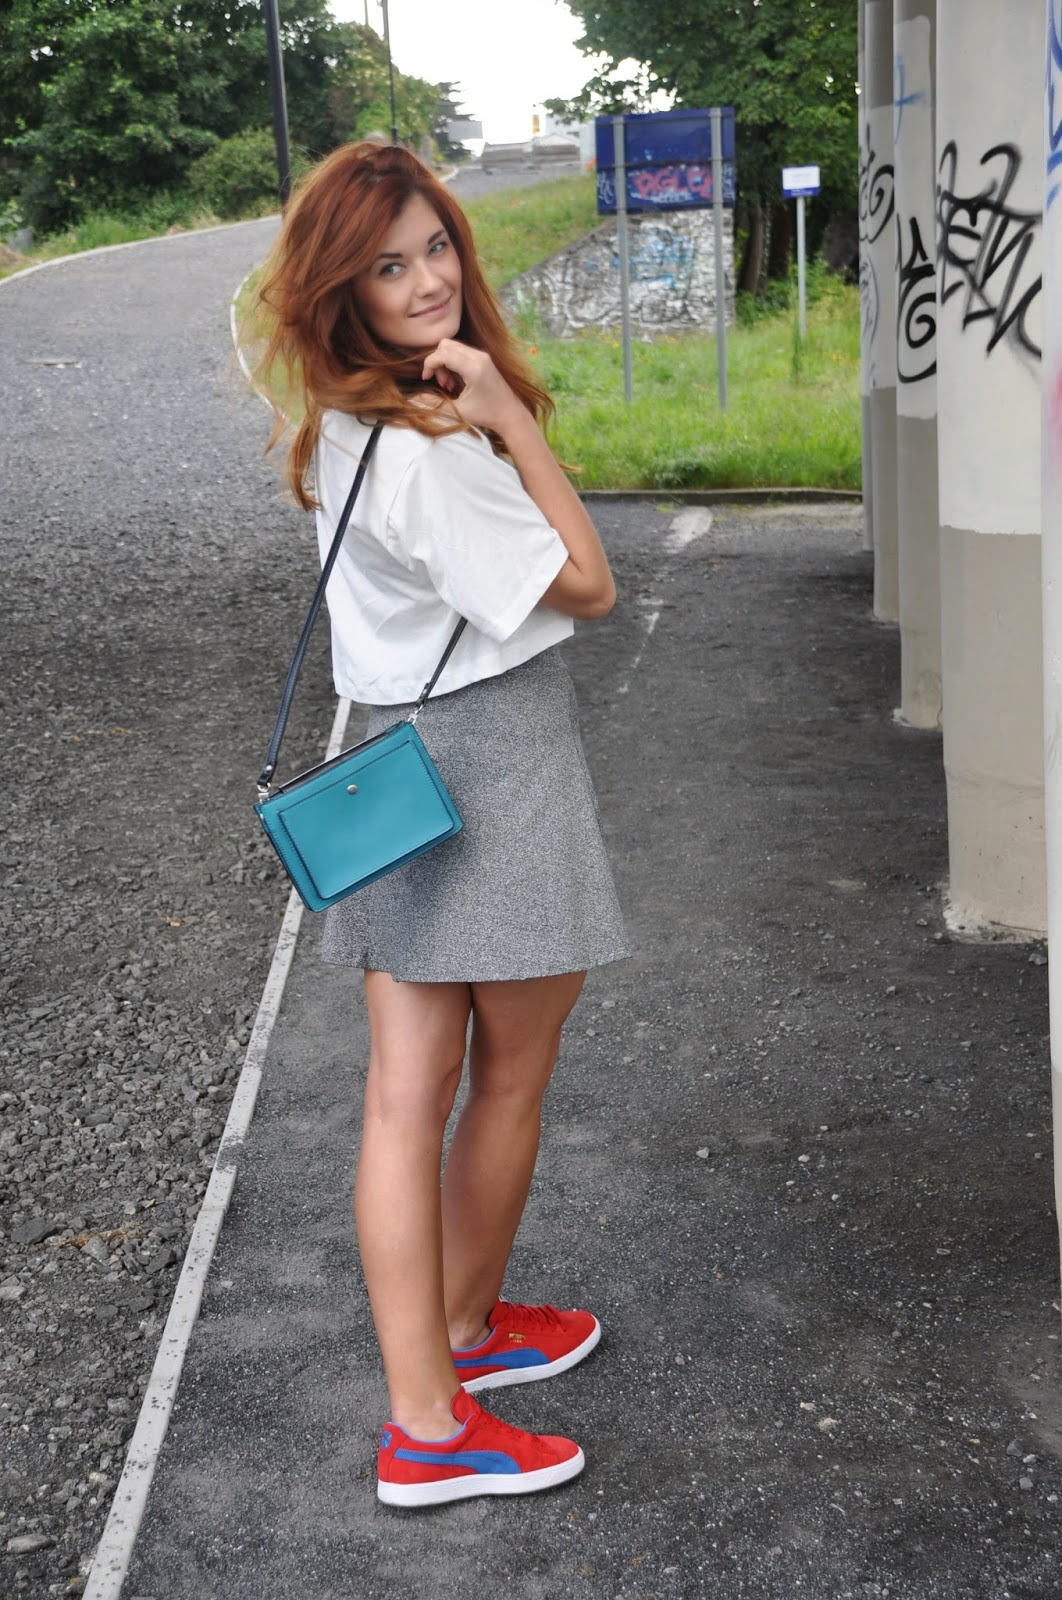 anna k's blog on fashion in dublin back to basics